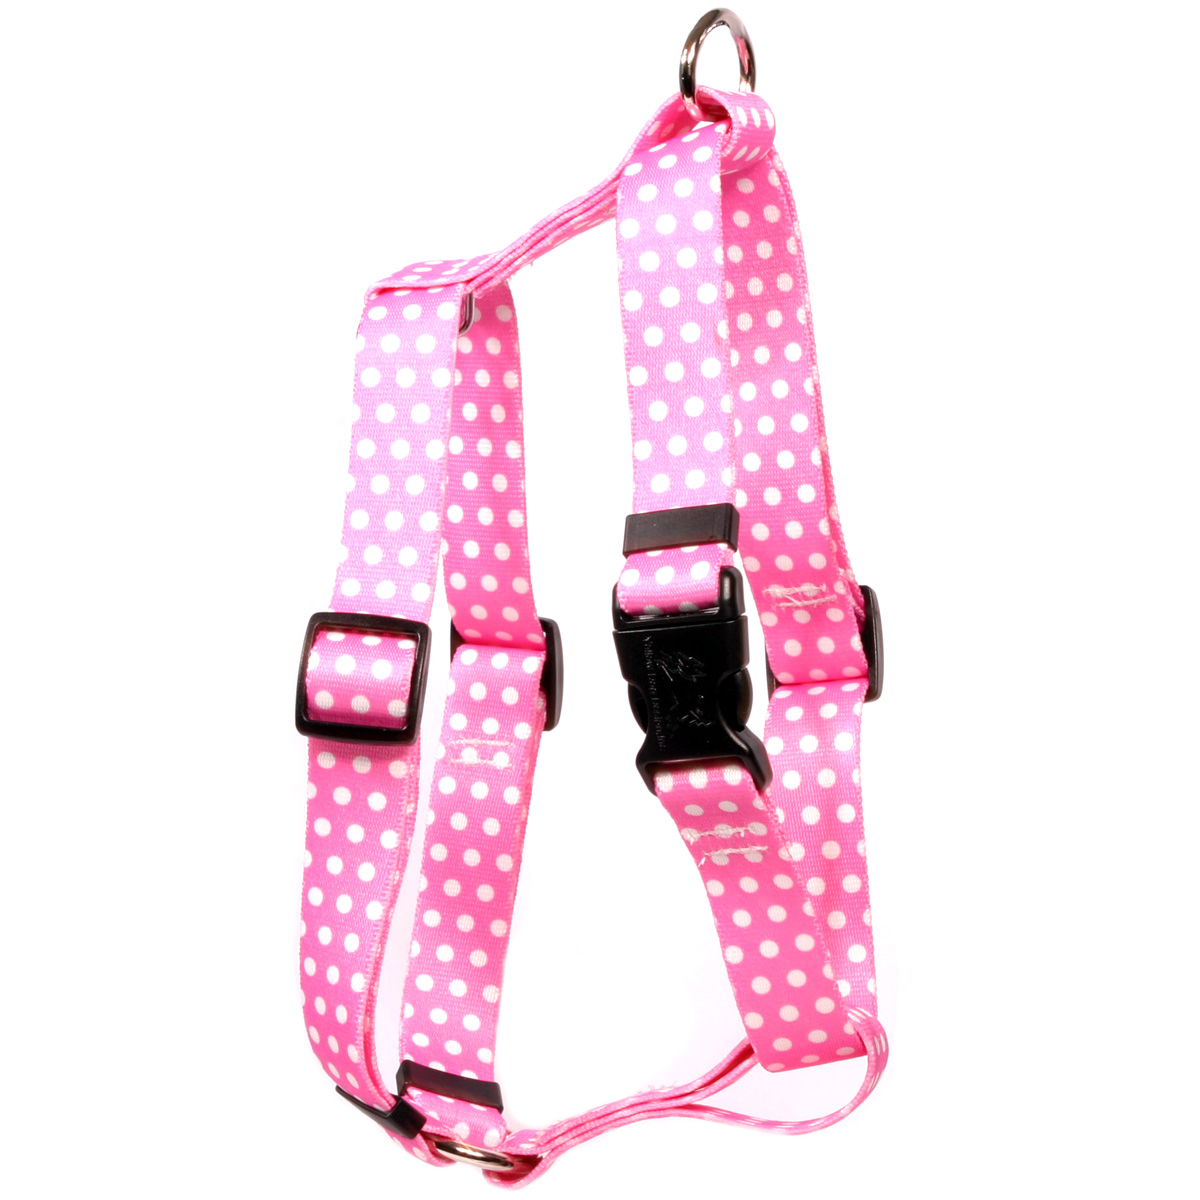 New Pink Polka Dot Roman H Harness